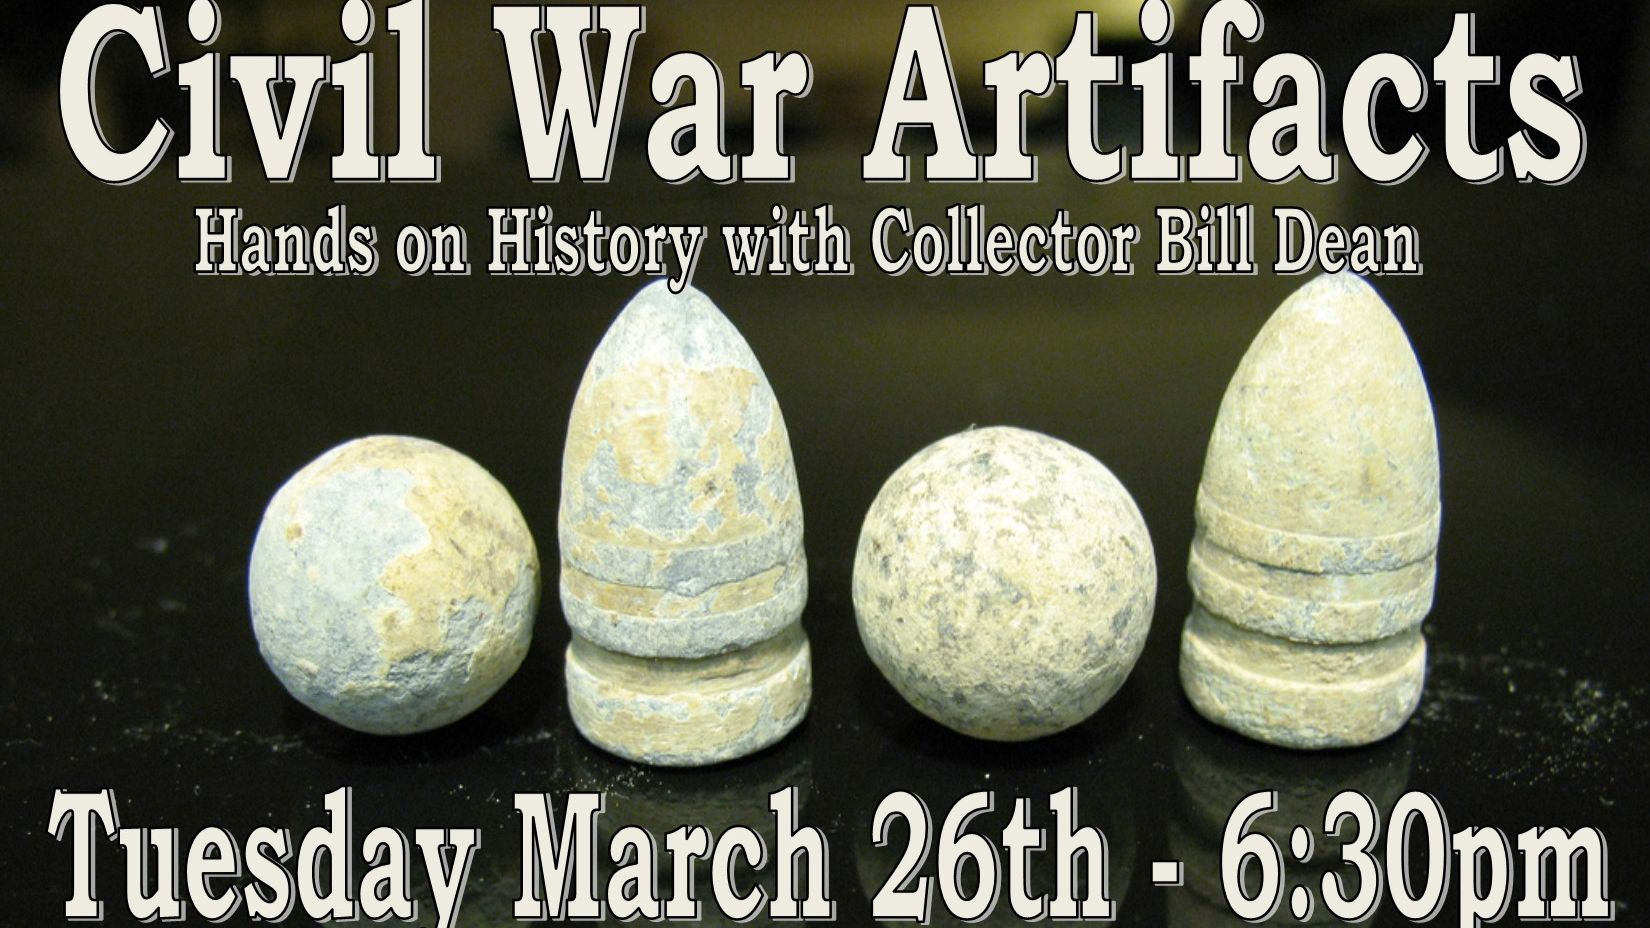 Civil War Artifacts with Bill Dean - Tuesday March 26th - 6:30pm